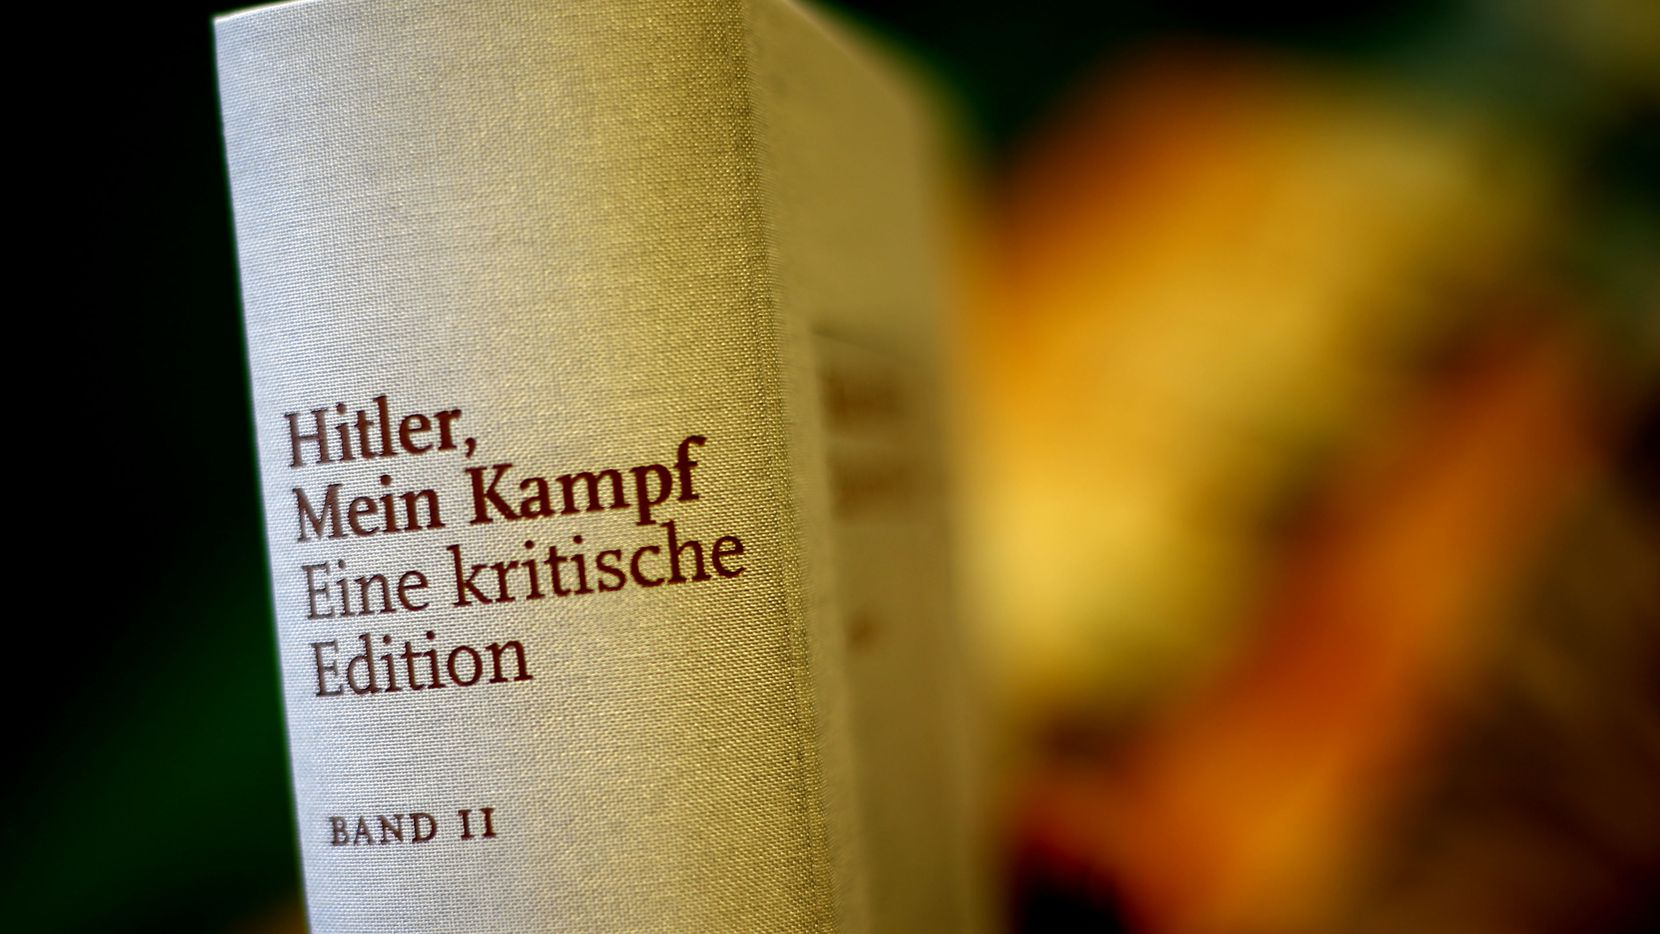 Adolf Hitler's Mein Kampf is not banned in Texas prisons, but a number of other books are.